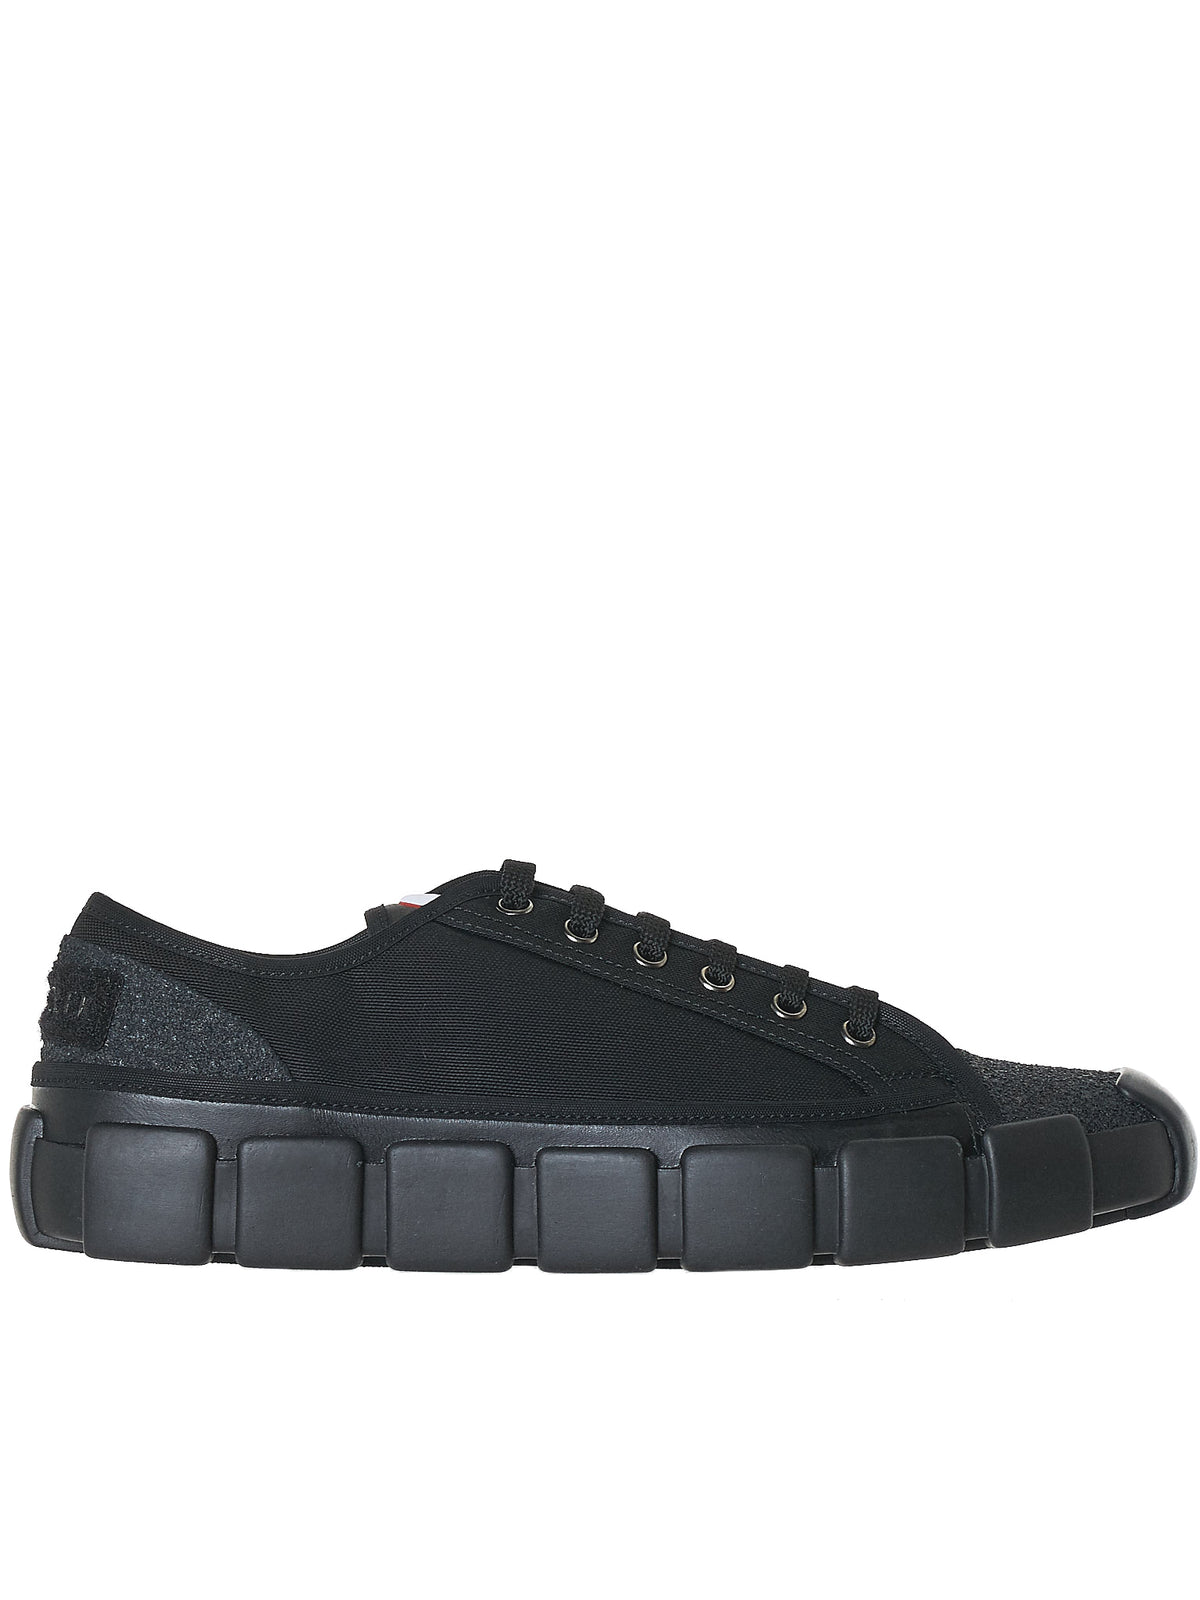 Moncler Craig Green Shoes - Hlorenzo Front